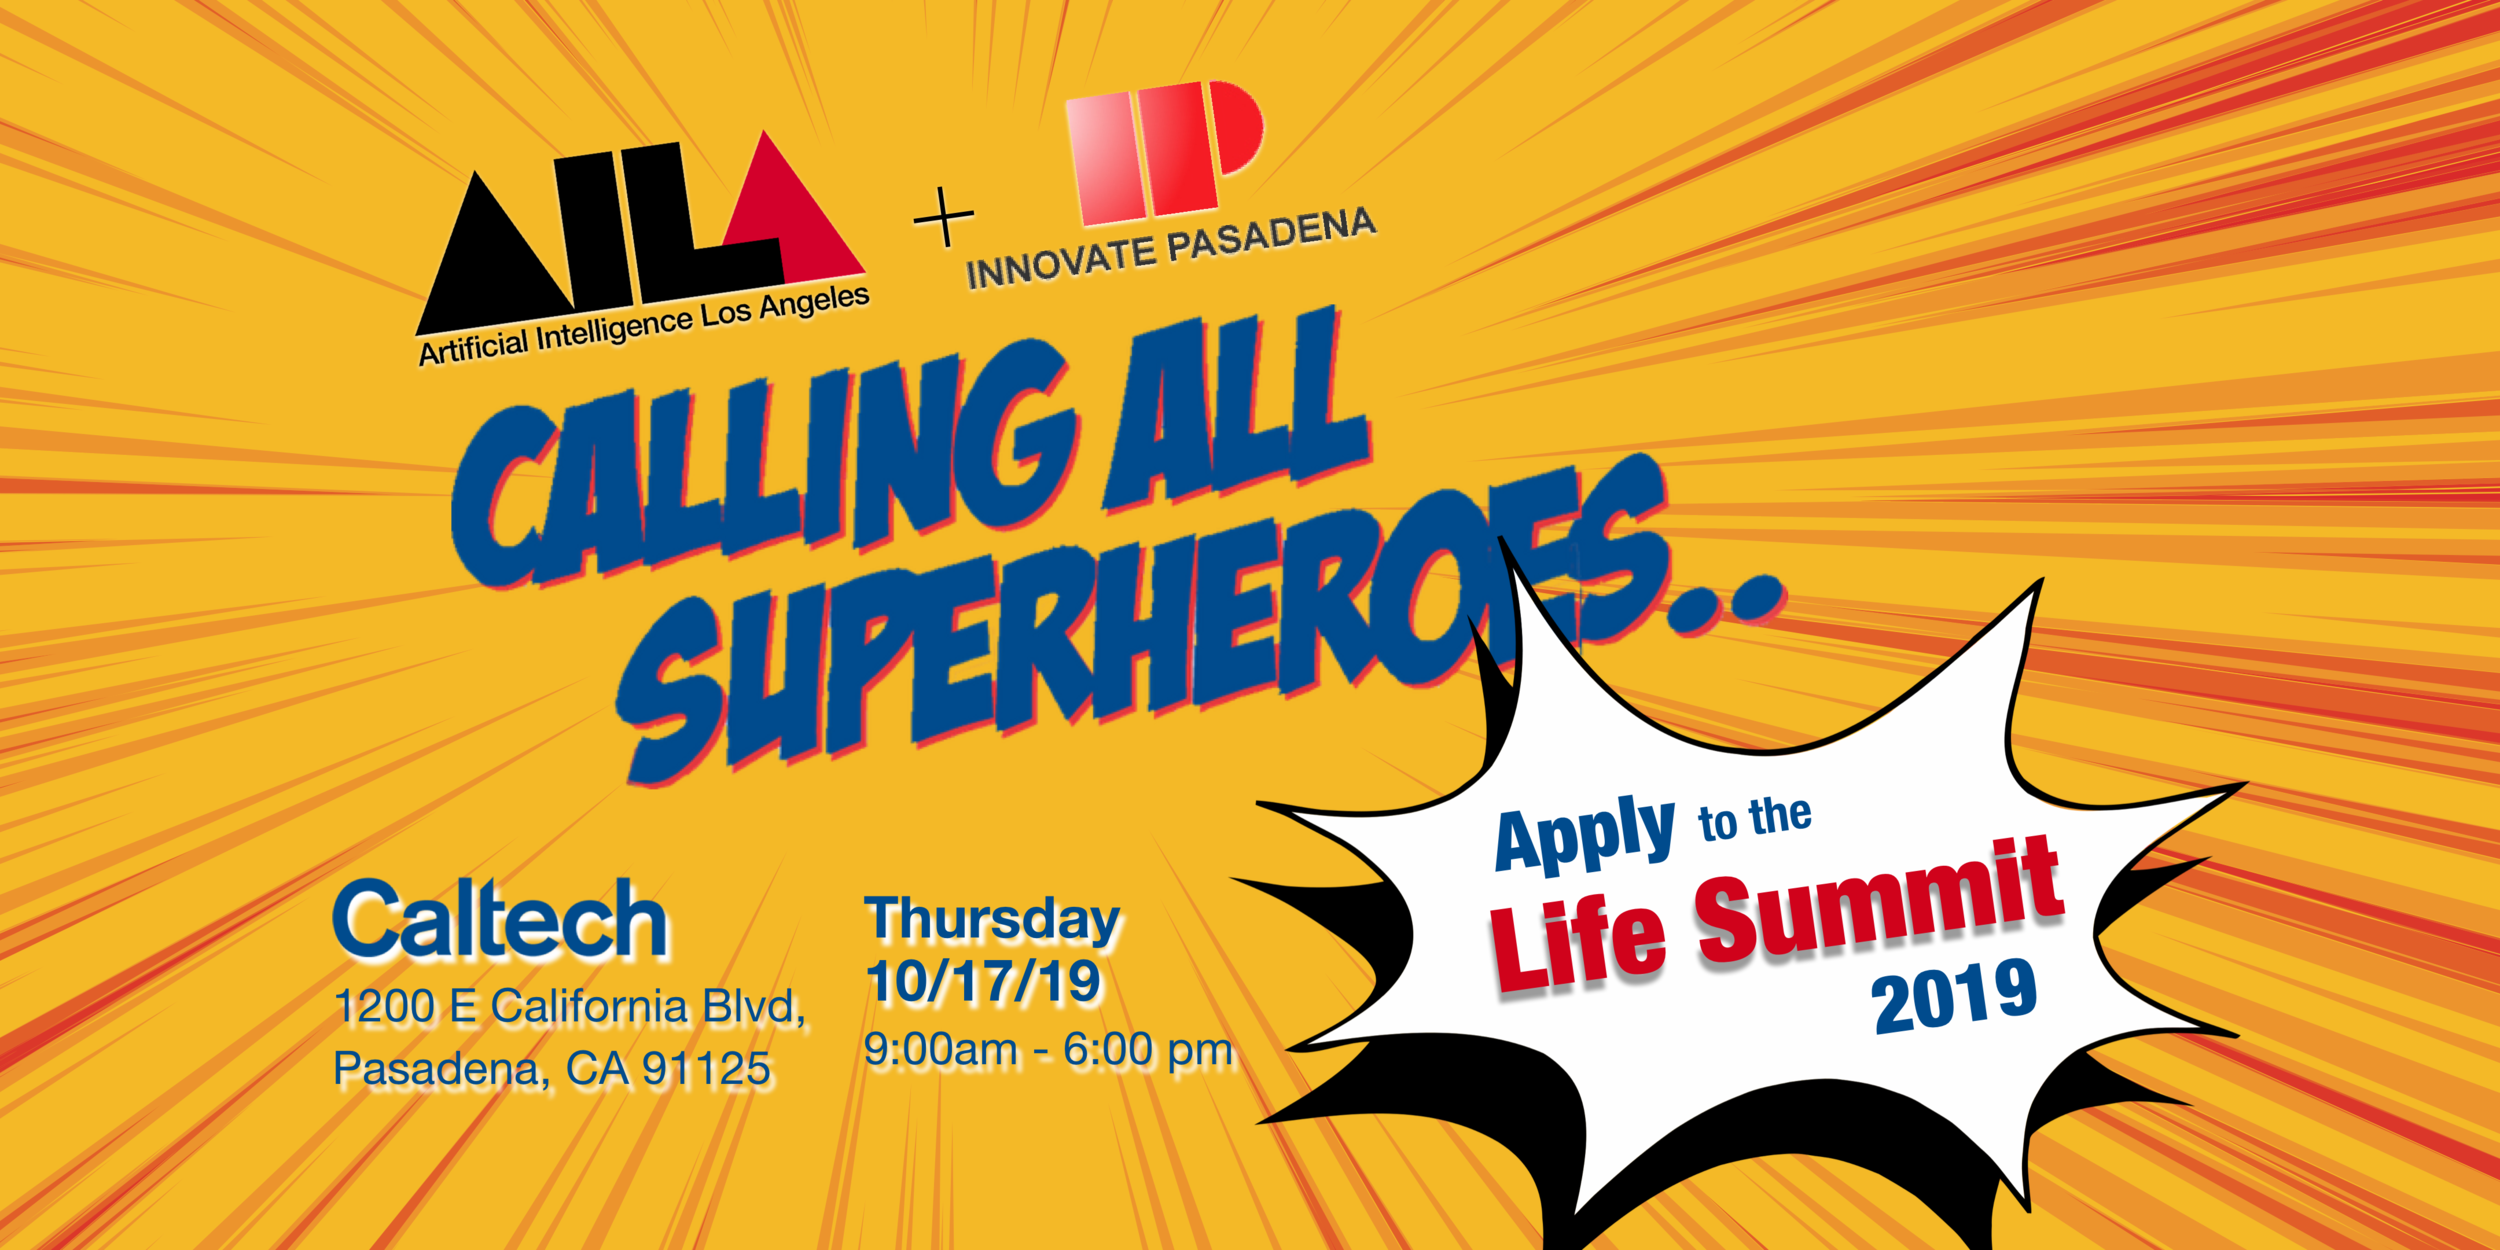 AILA_1019_Superhero invite (2).png